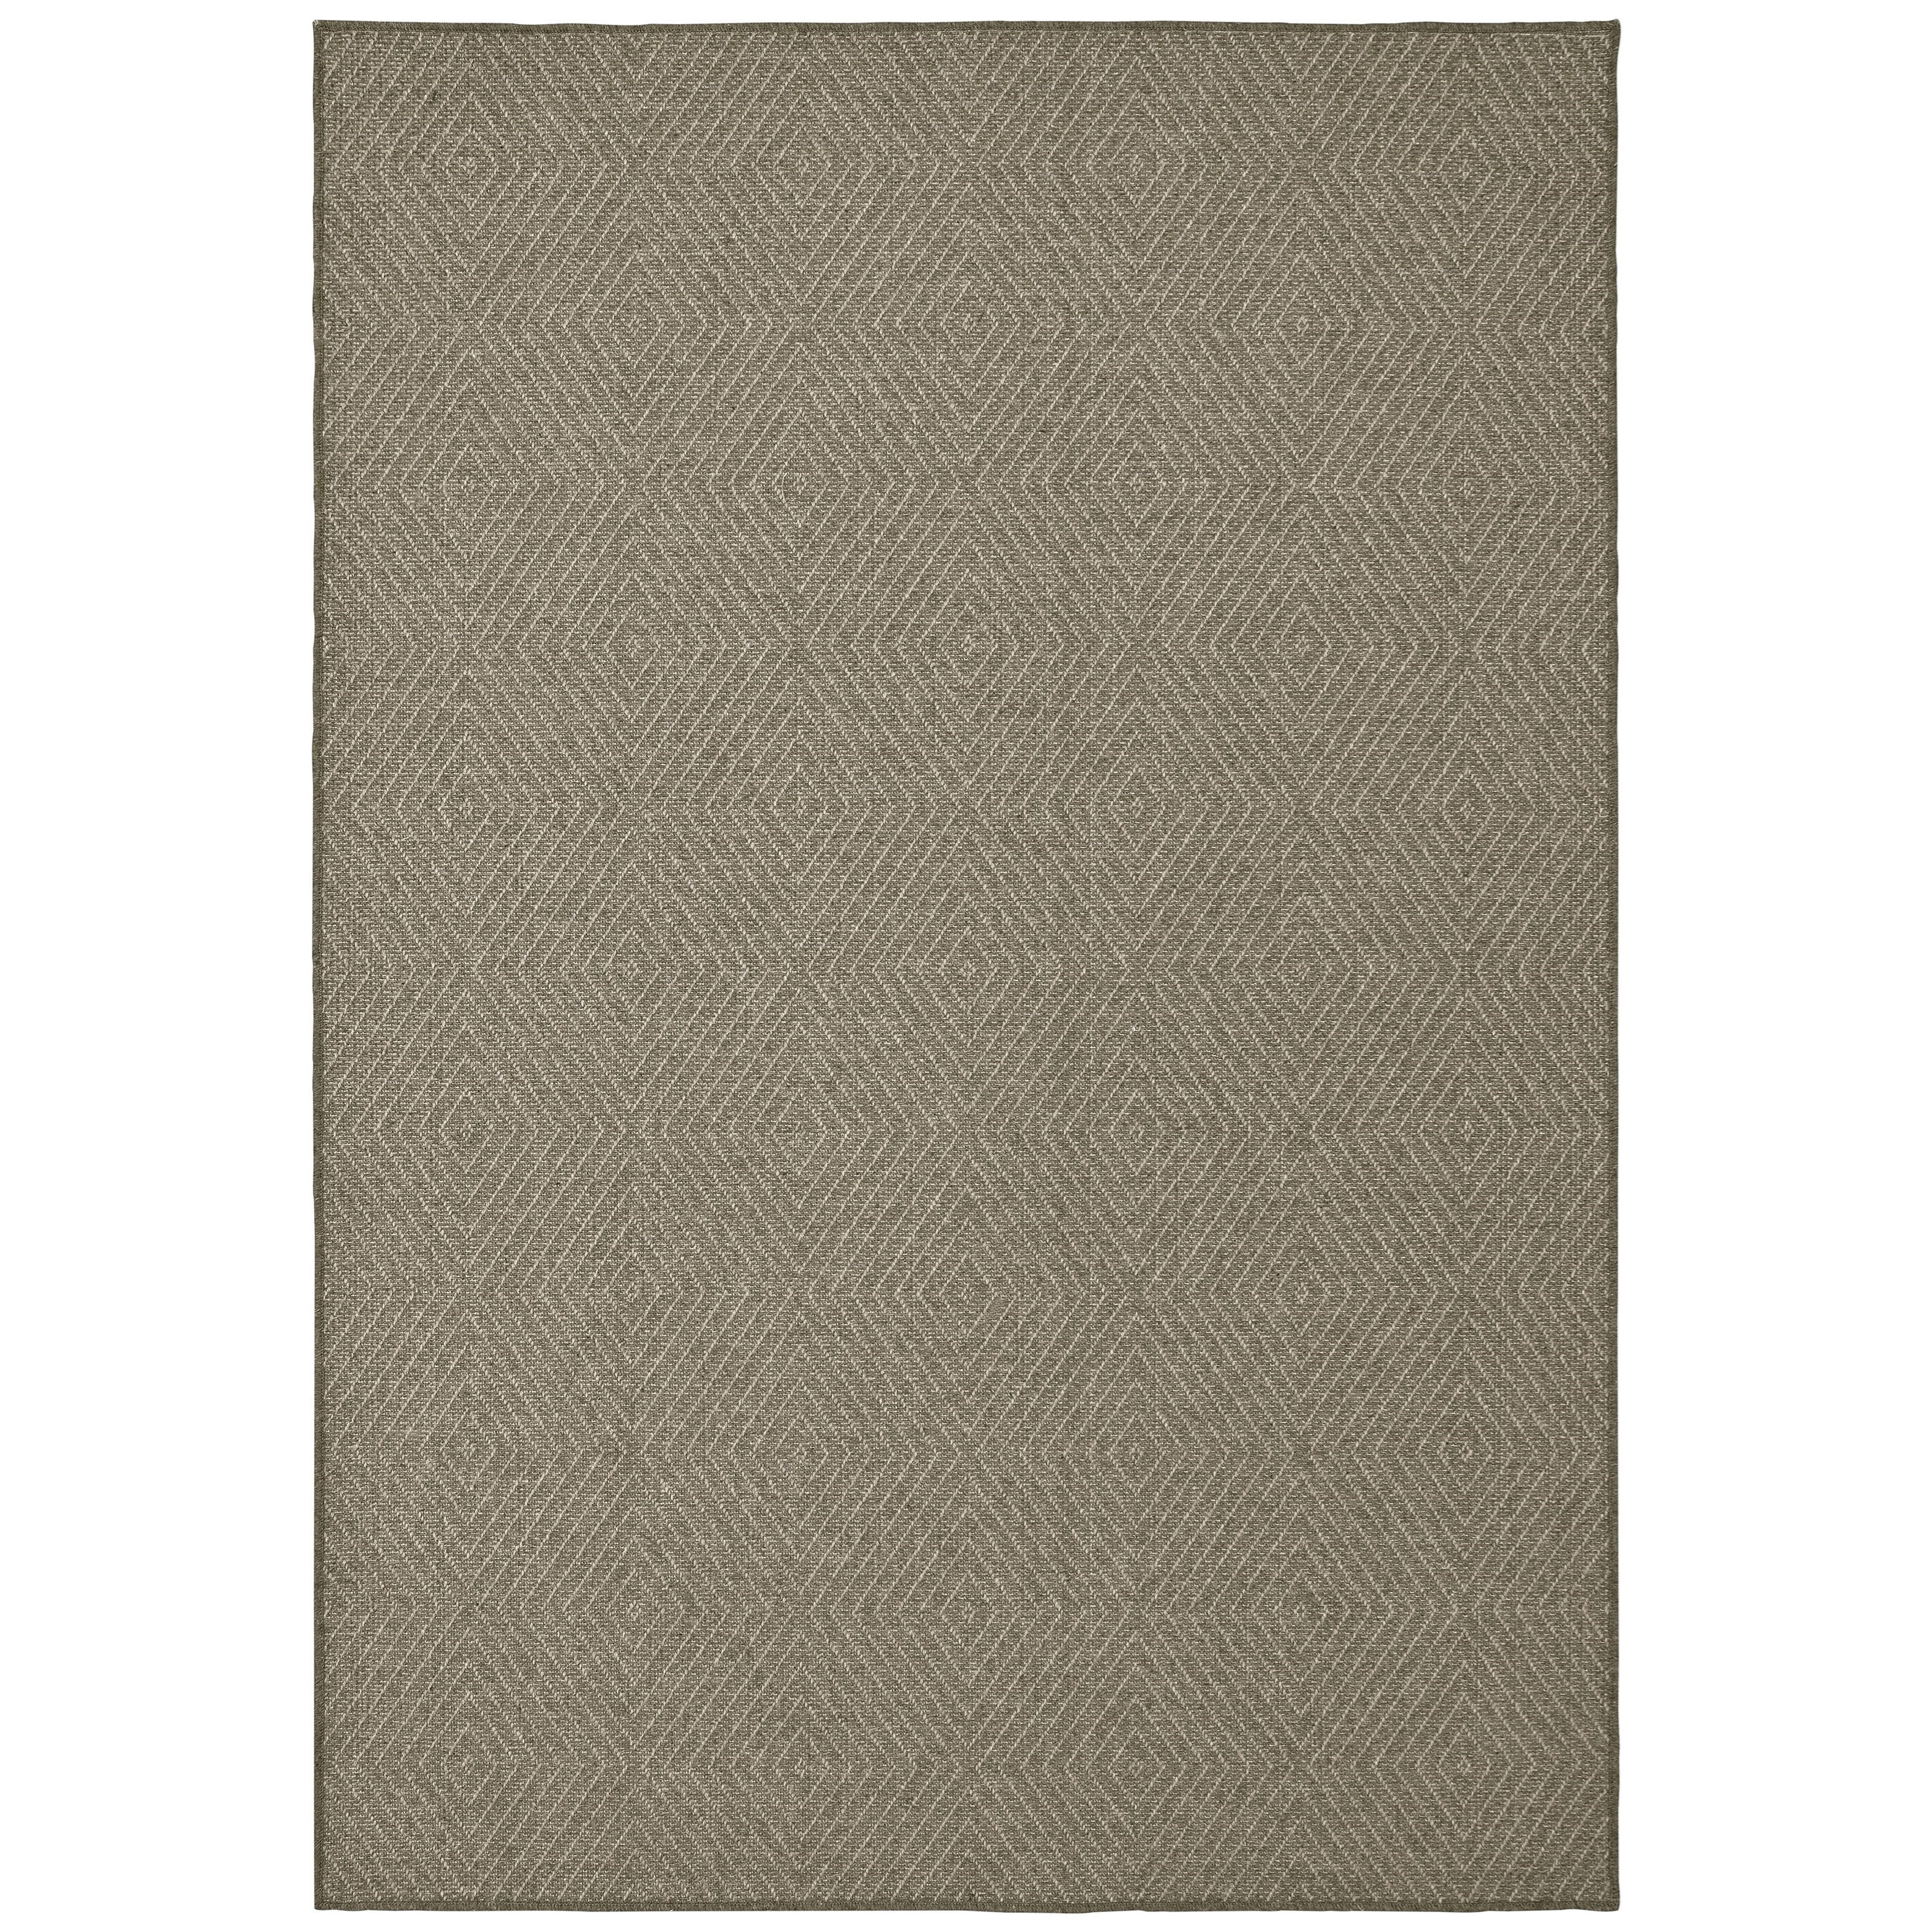 "Boucle 7'10"" X 10'10"" Rectangle Rug by Oriental Weavers at Darvin Furniture"